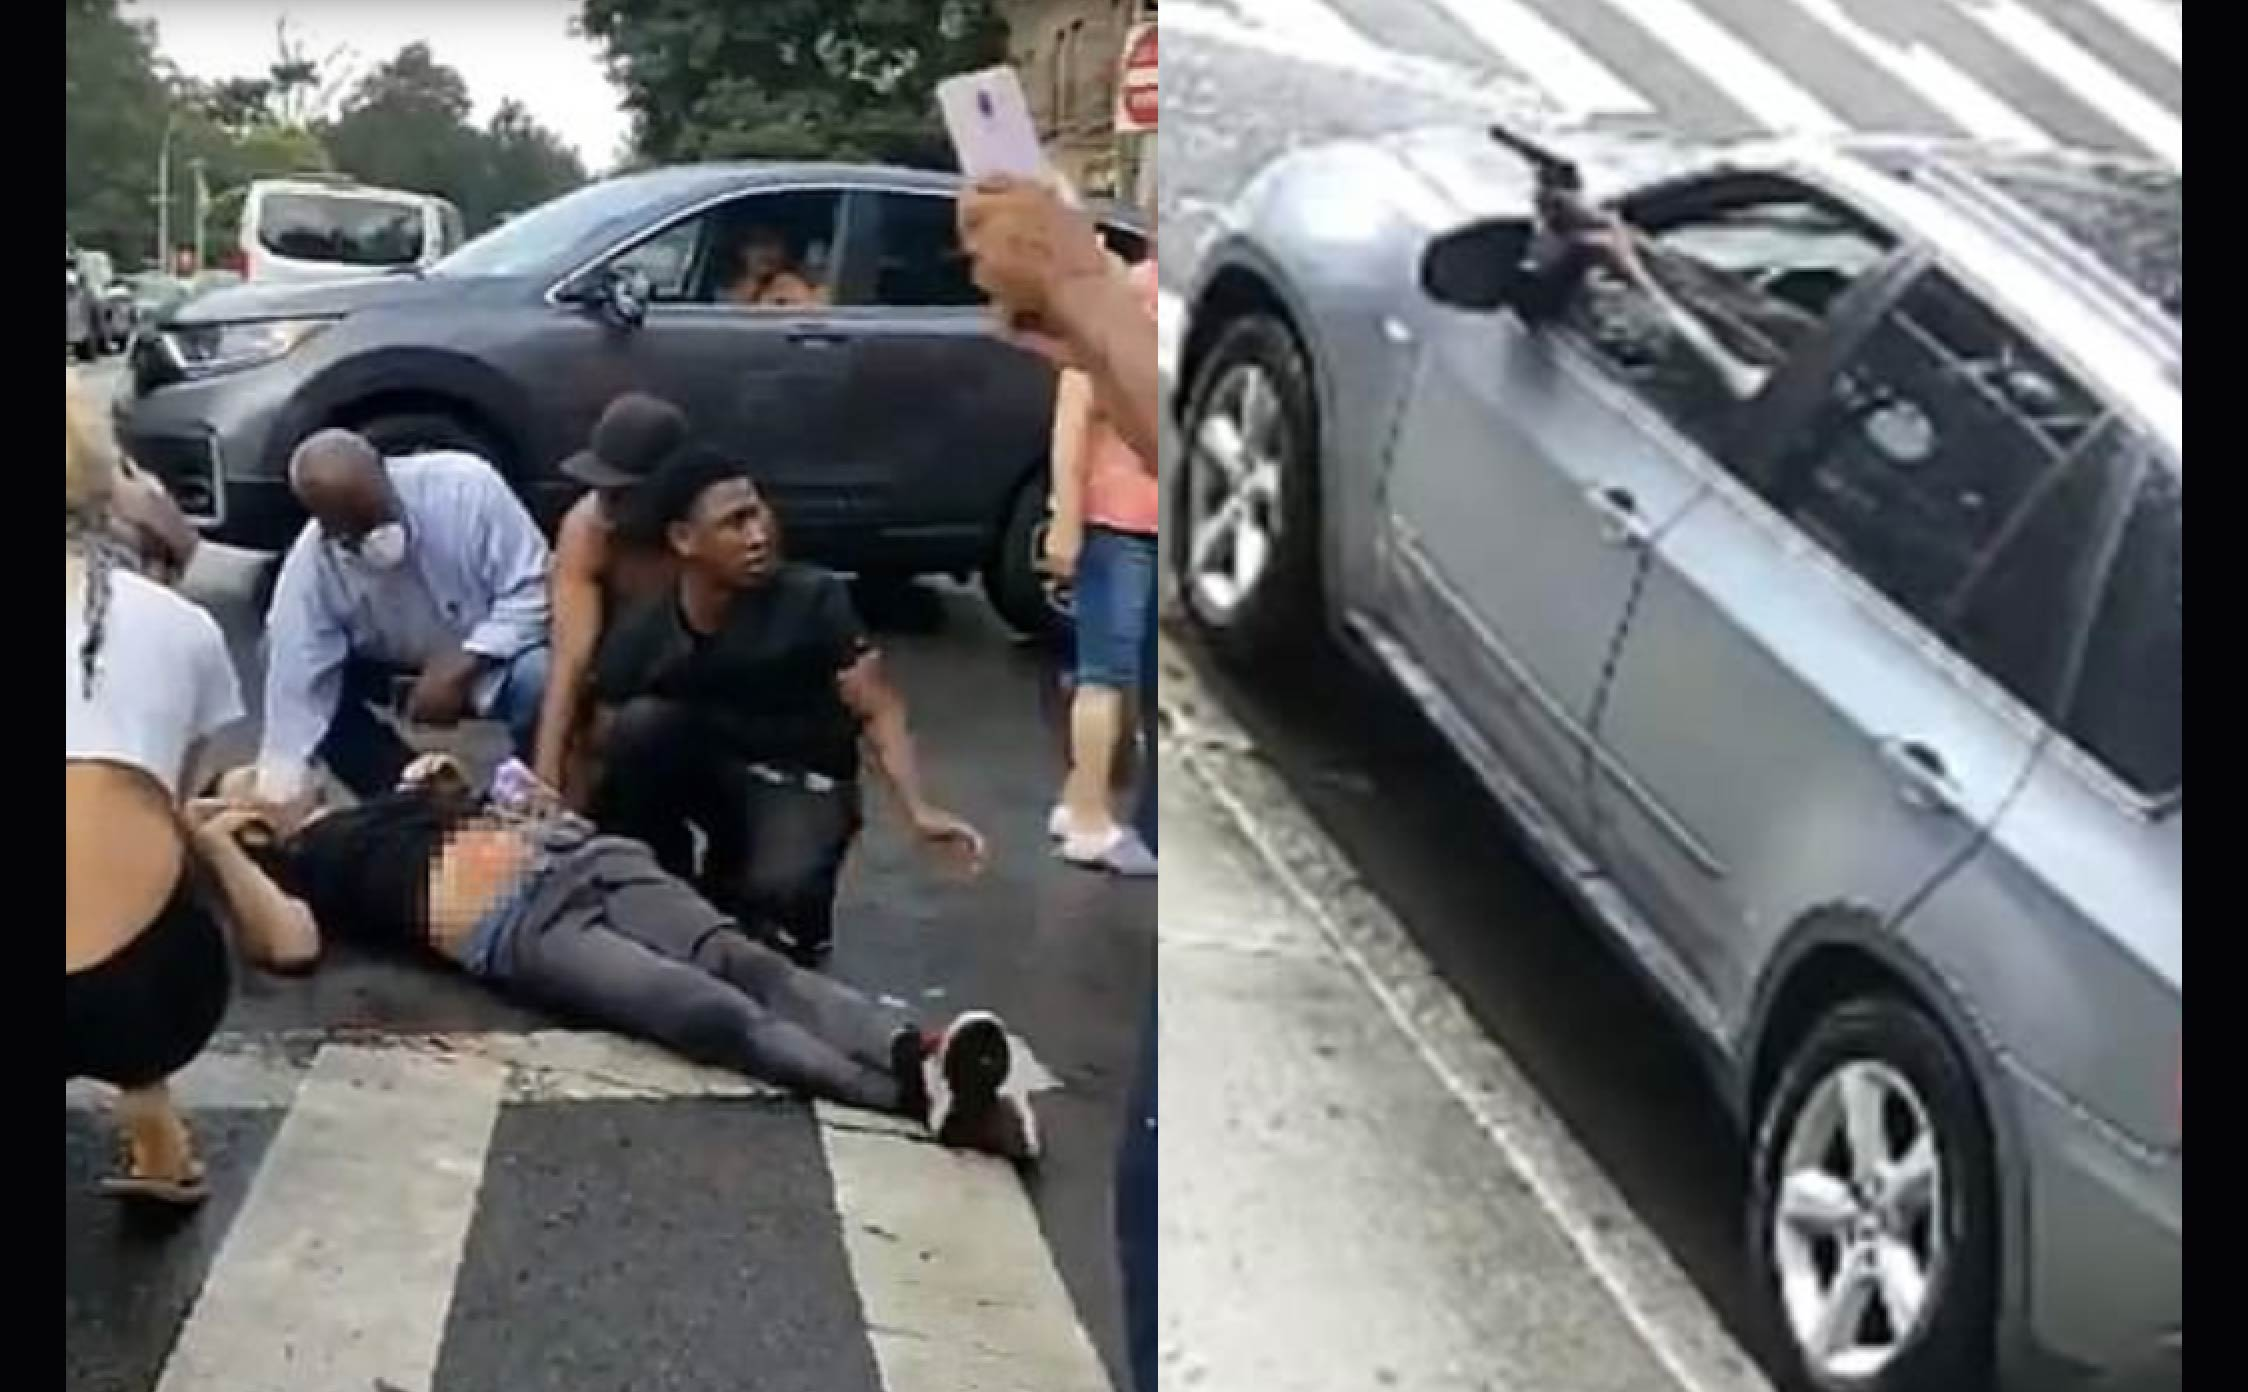 Brooklyn Man Paralyzed After Being Shot by a Stray Bullet While Walking to the Store to Buy Toothpaste